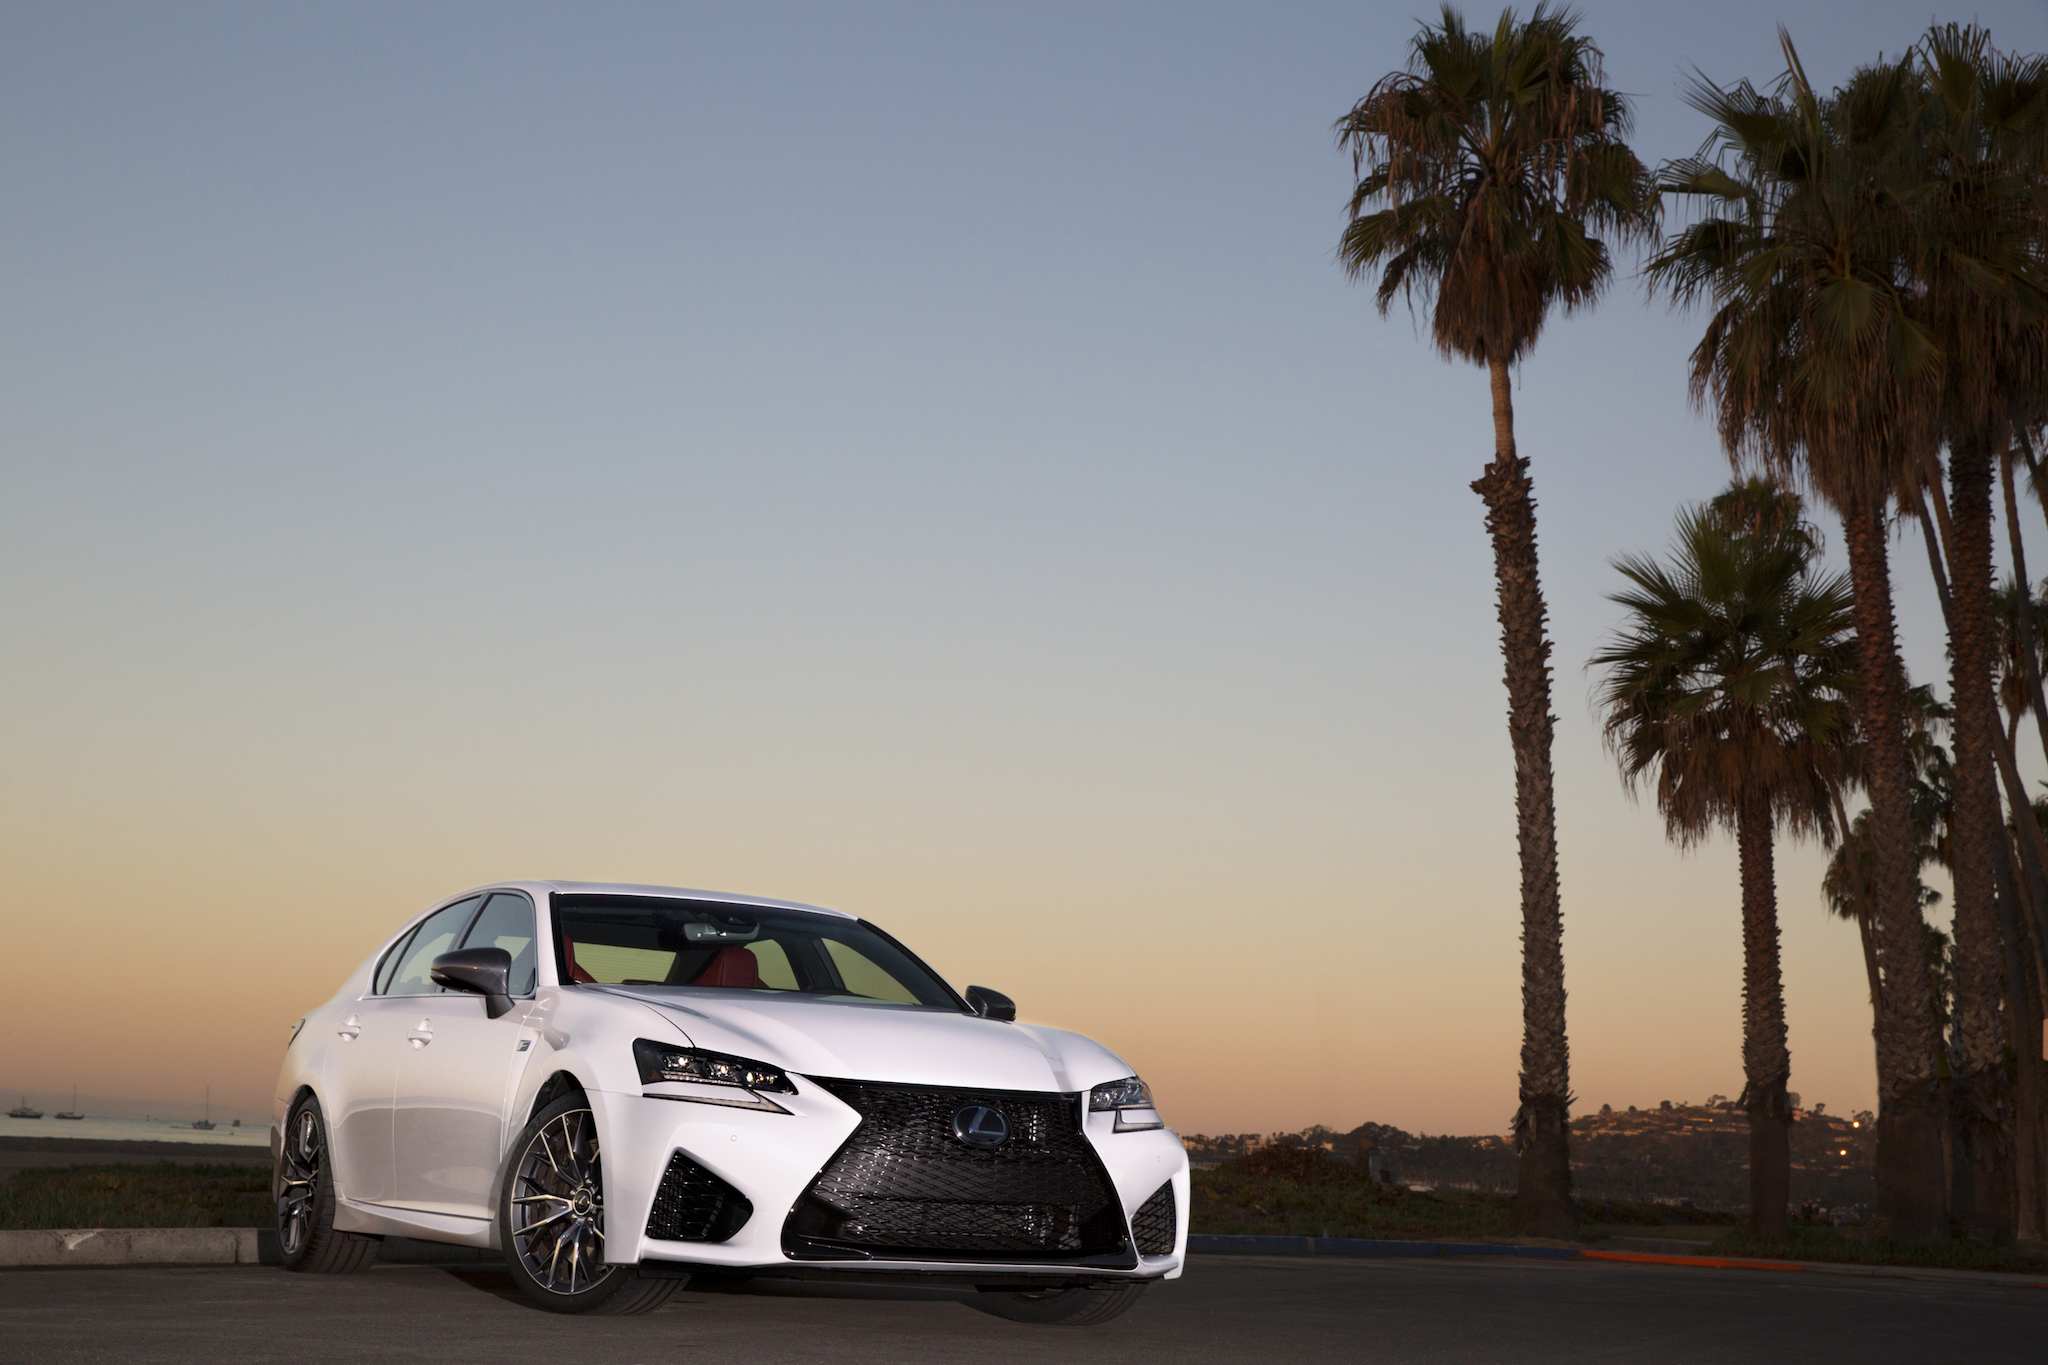 Lexus Gs F >> A 5 Liter V8 In A World Of Small Capacity Turbos The 2018